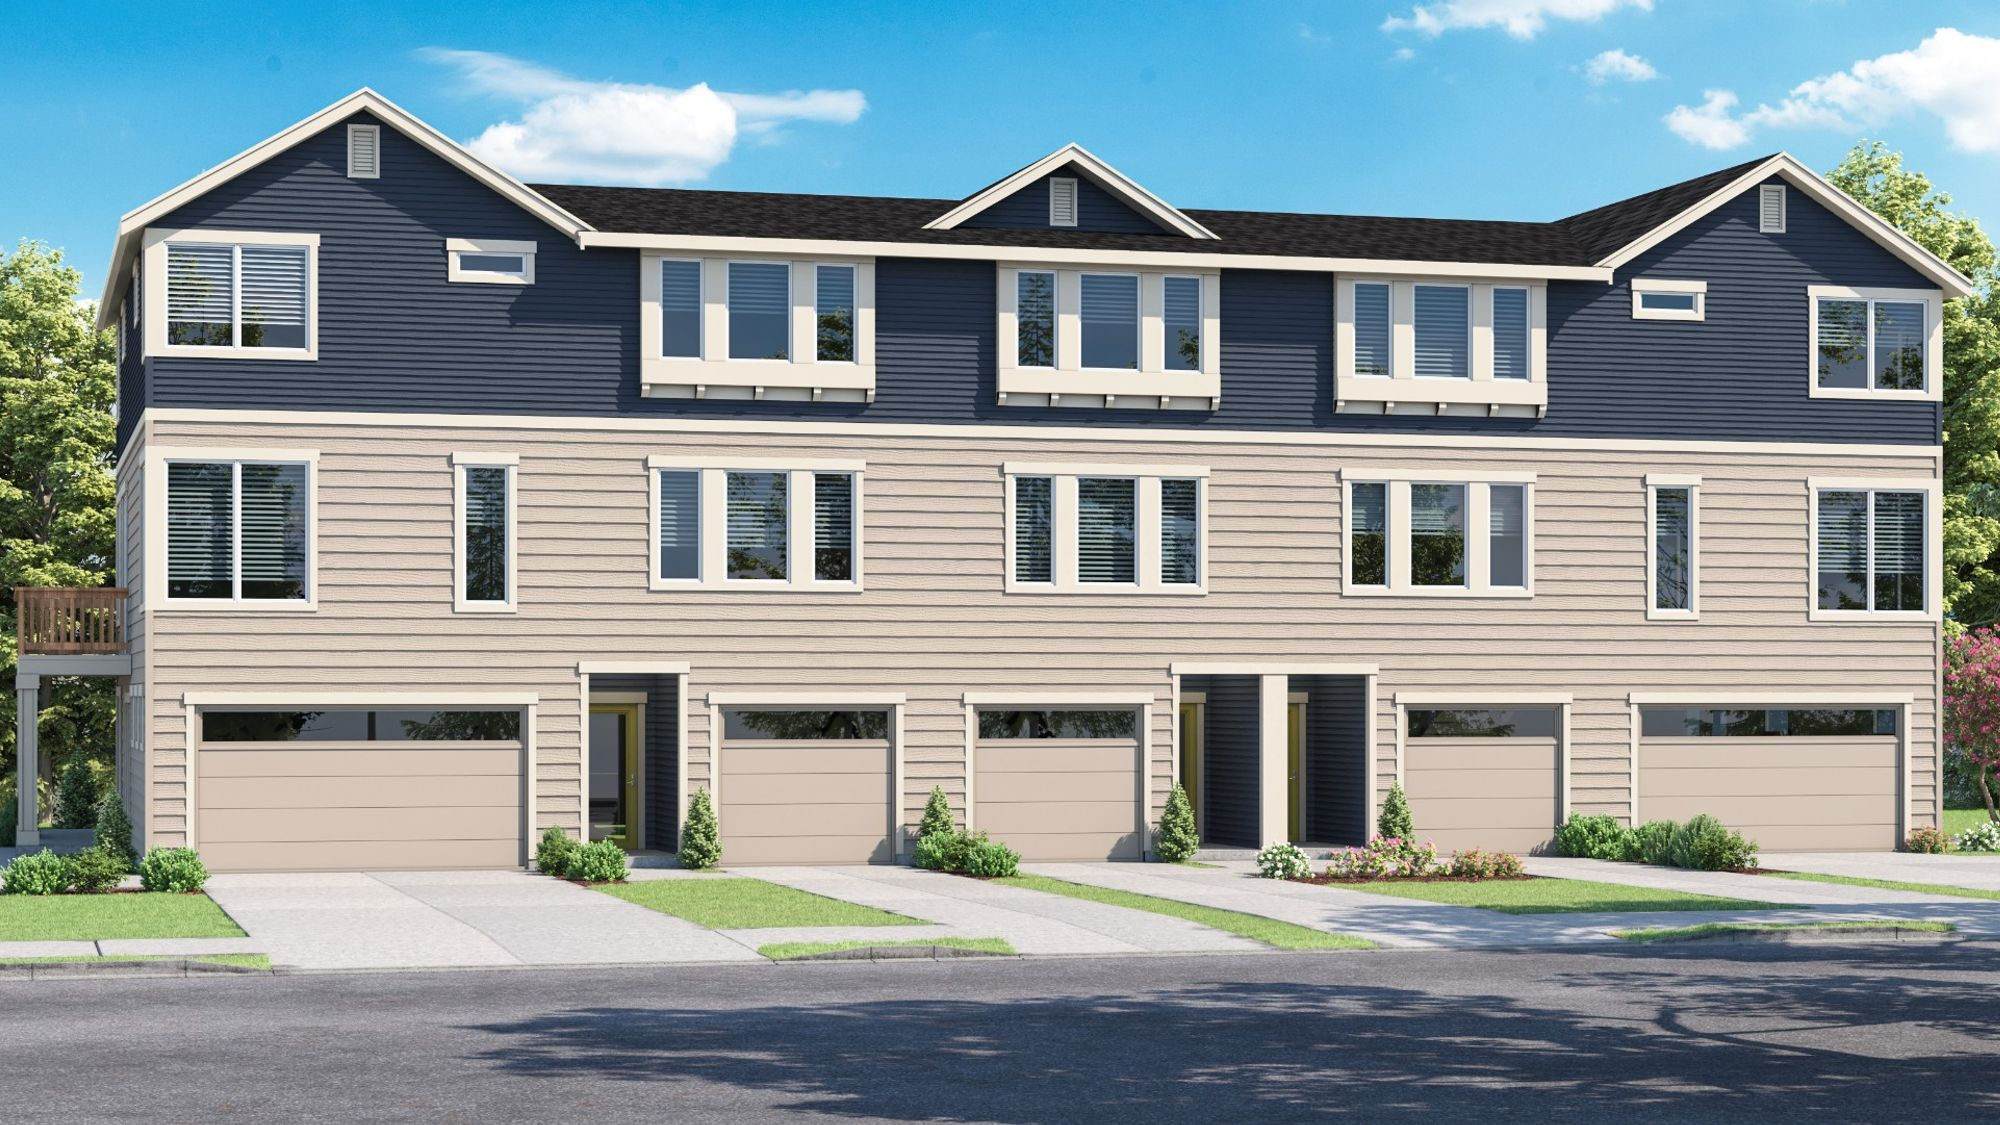 Exterior Rendering of the AVO townhomes in WA Bronze Exterior Color Scheme by Sage Homes Northwest